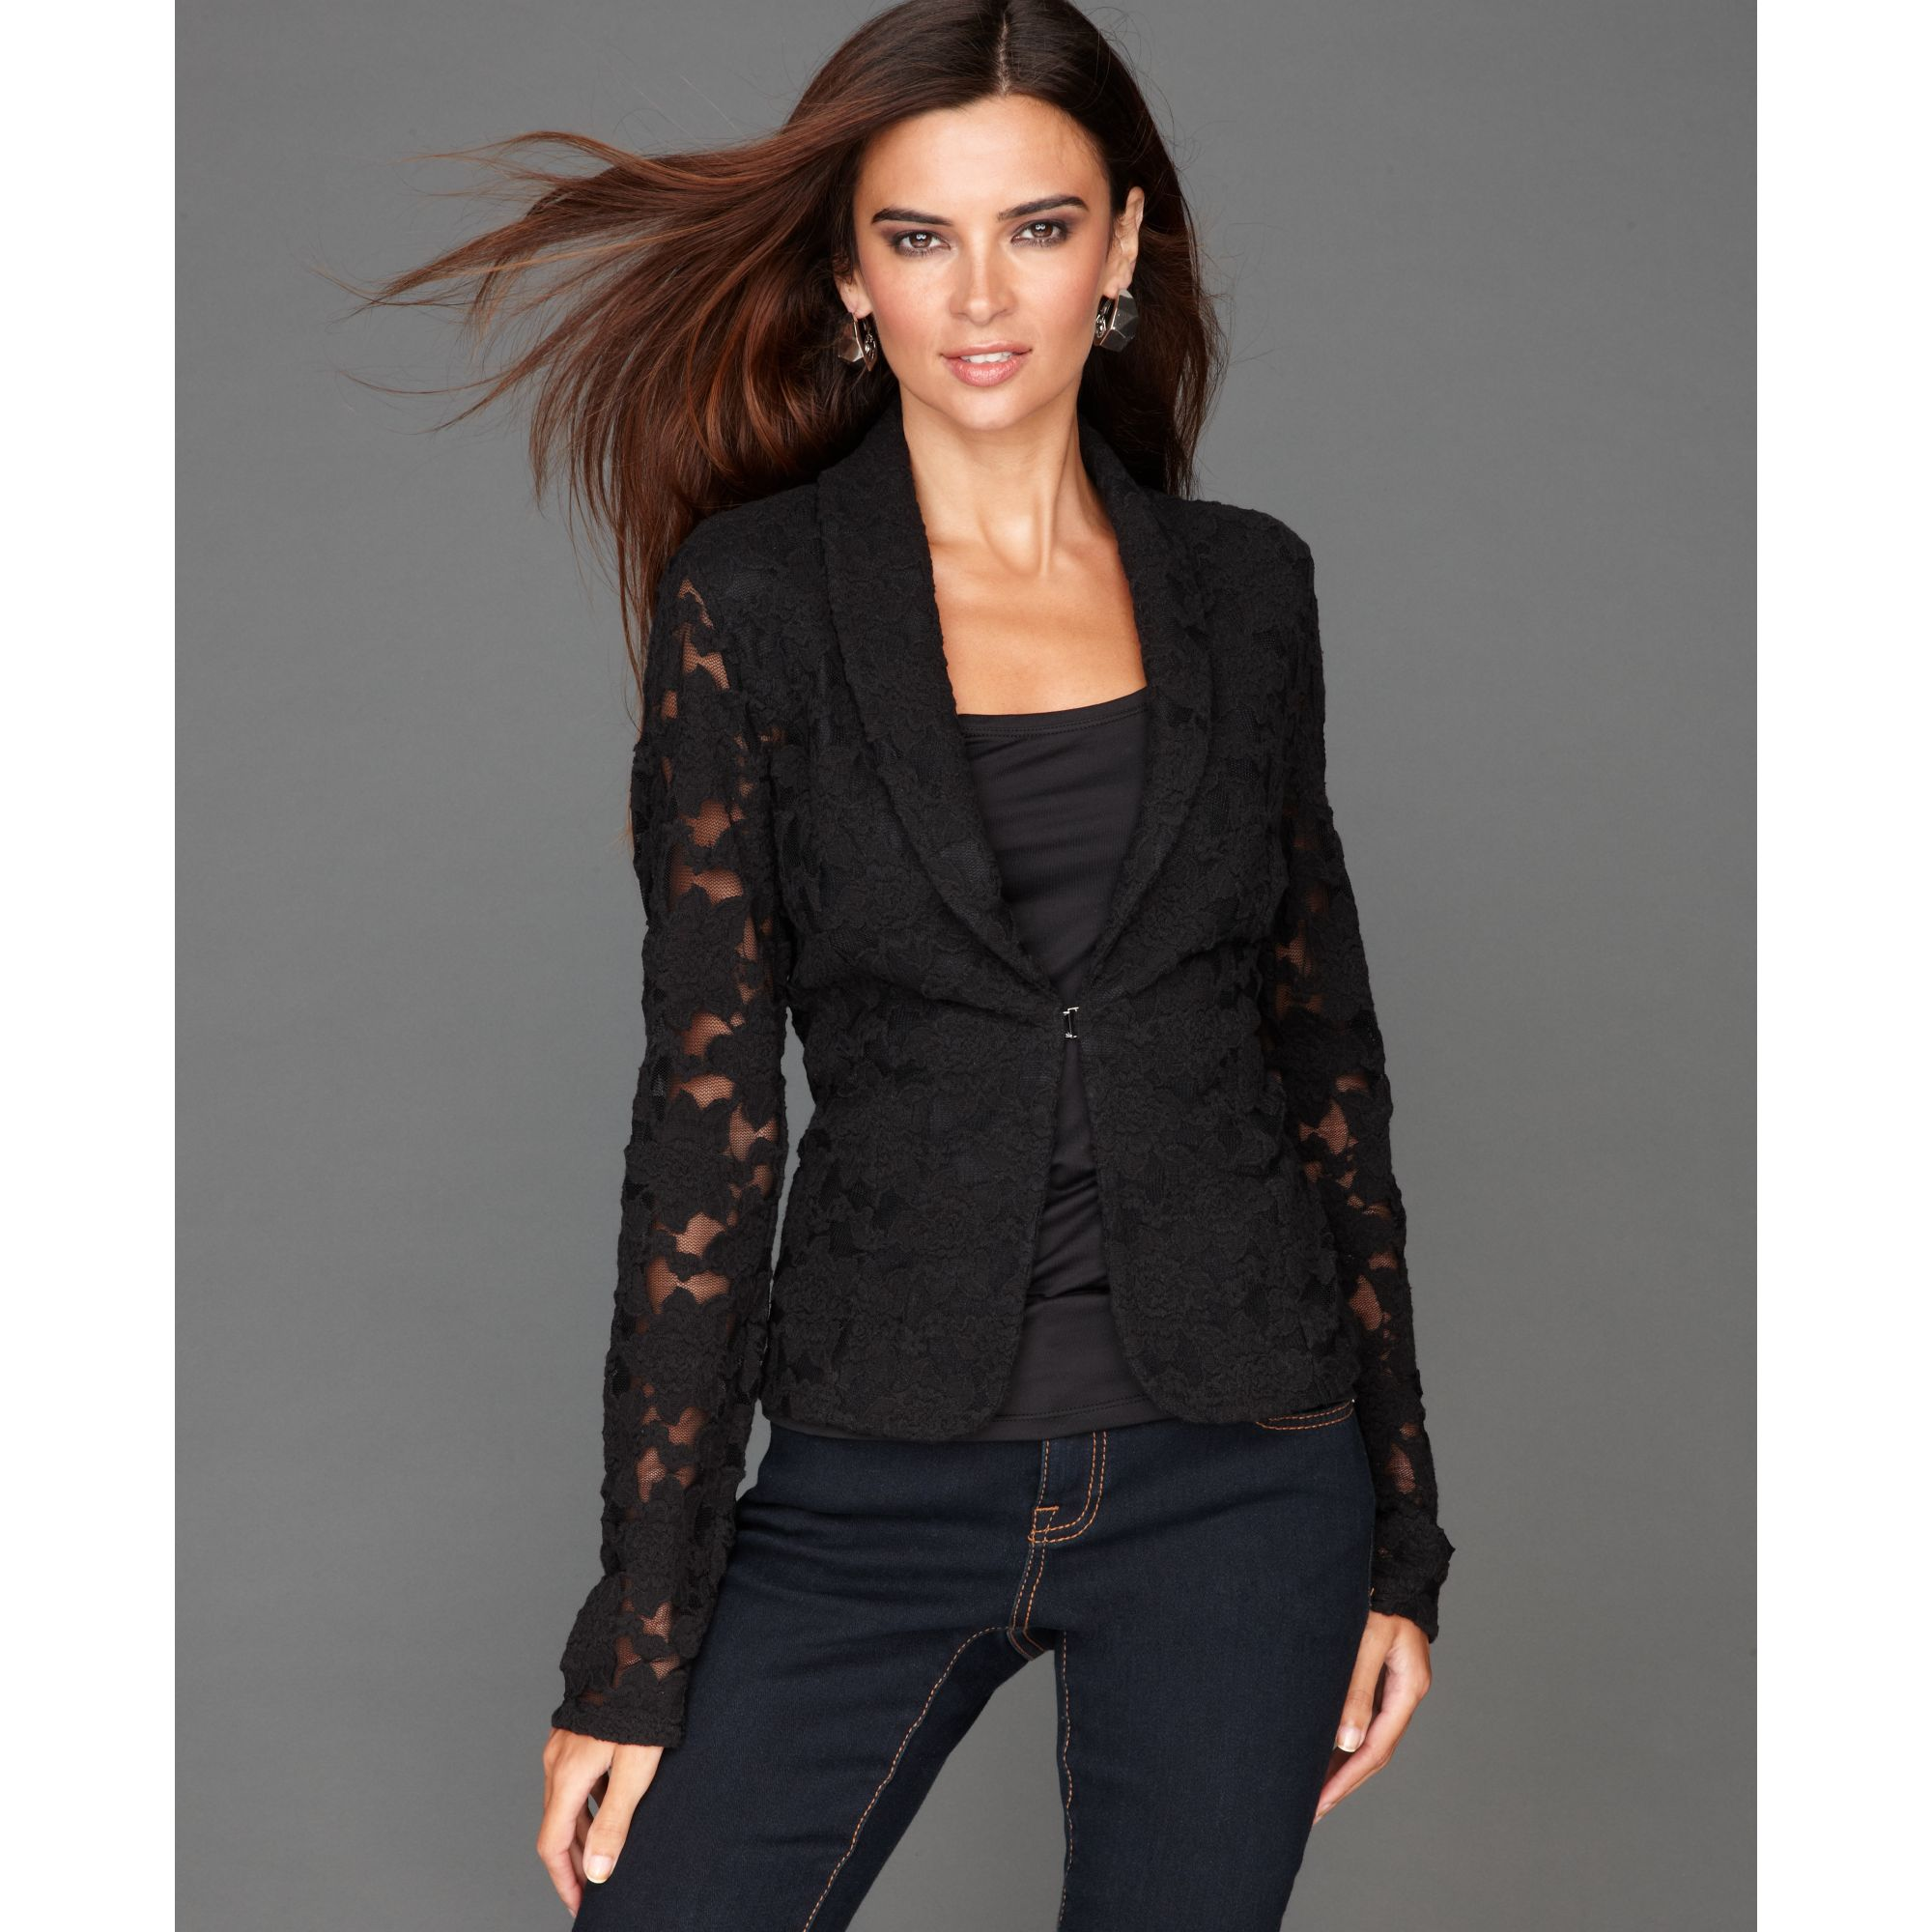 You searched for: black lace blazer! Etsy is the home to thousands of handmade, vintage, and one-of-a-kind products and gifts related to your search. No matter what you're looking for or where you are in the world, our global marketplace of sellers can help you find unique and affordable options. Let's get started!